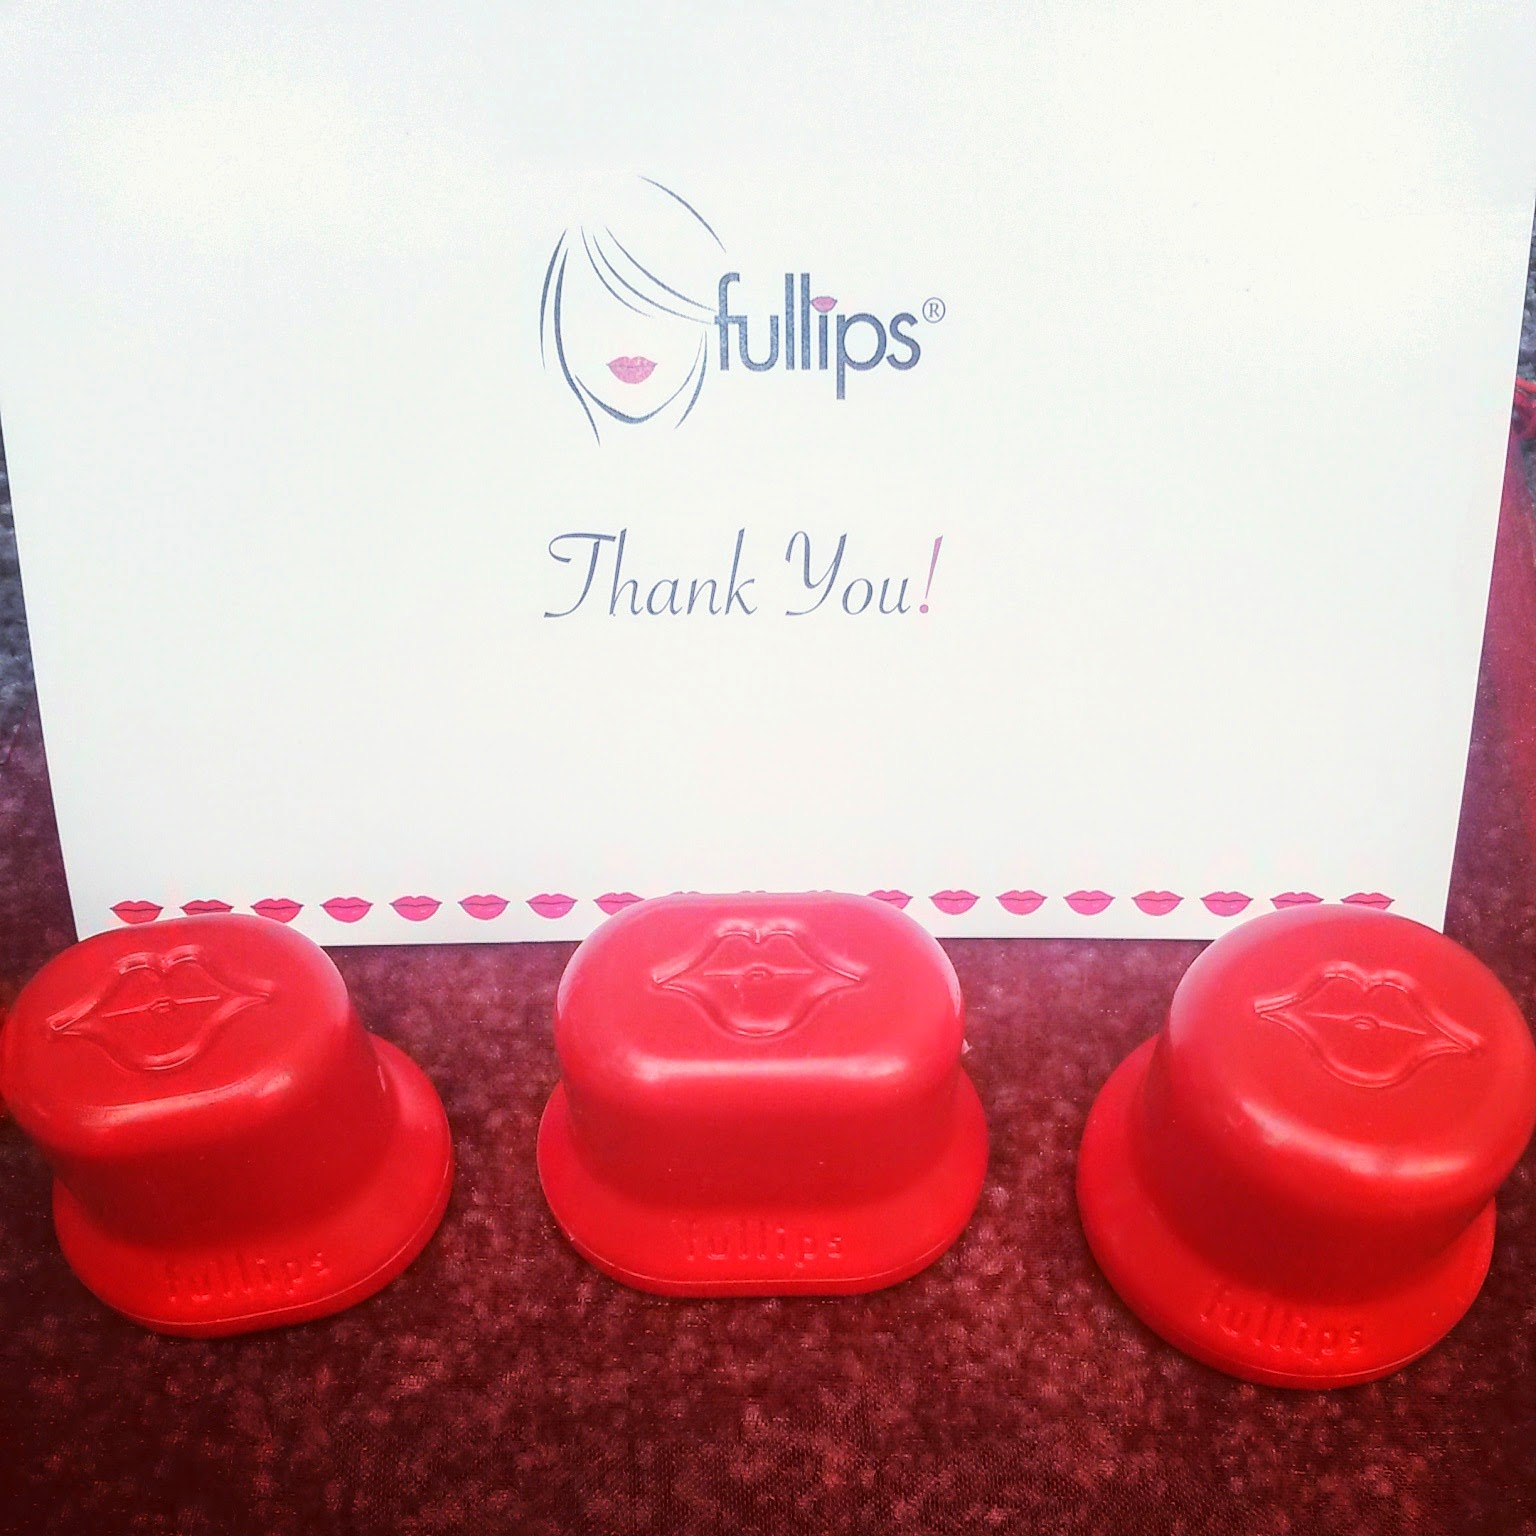 Fullips Review UK